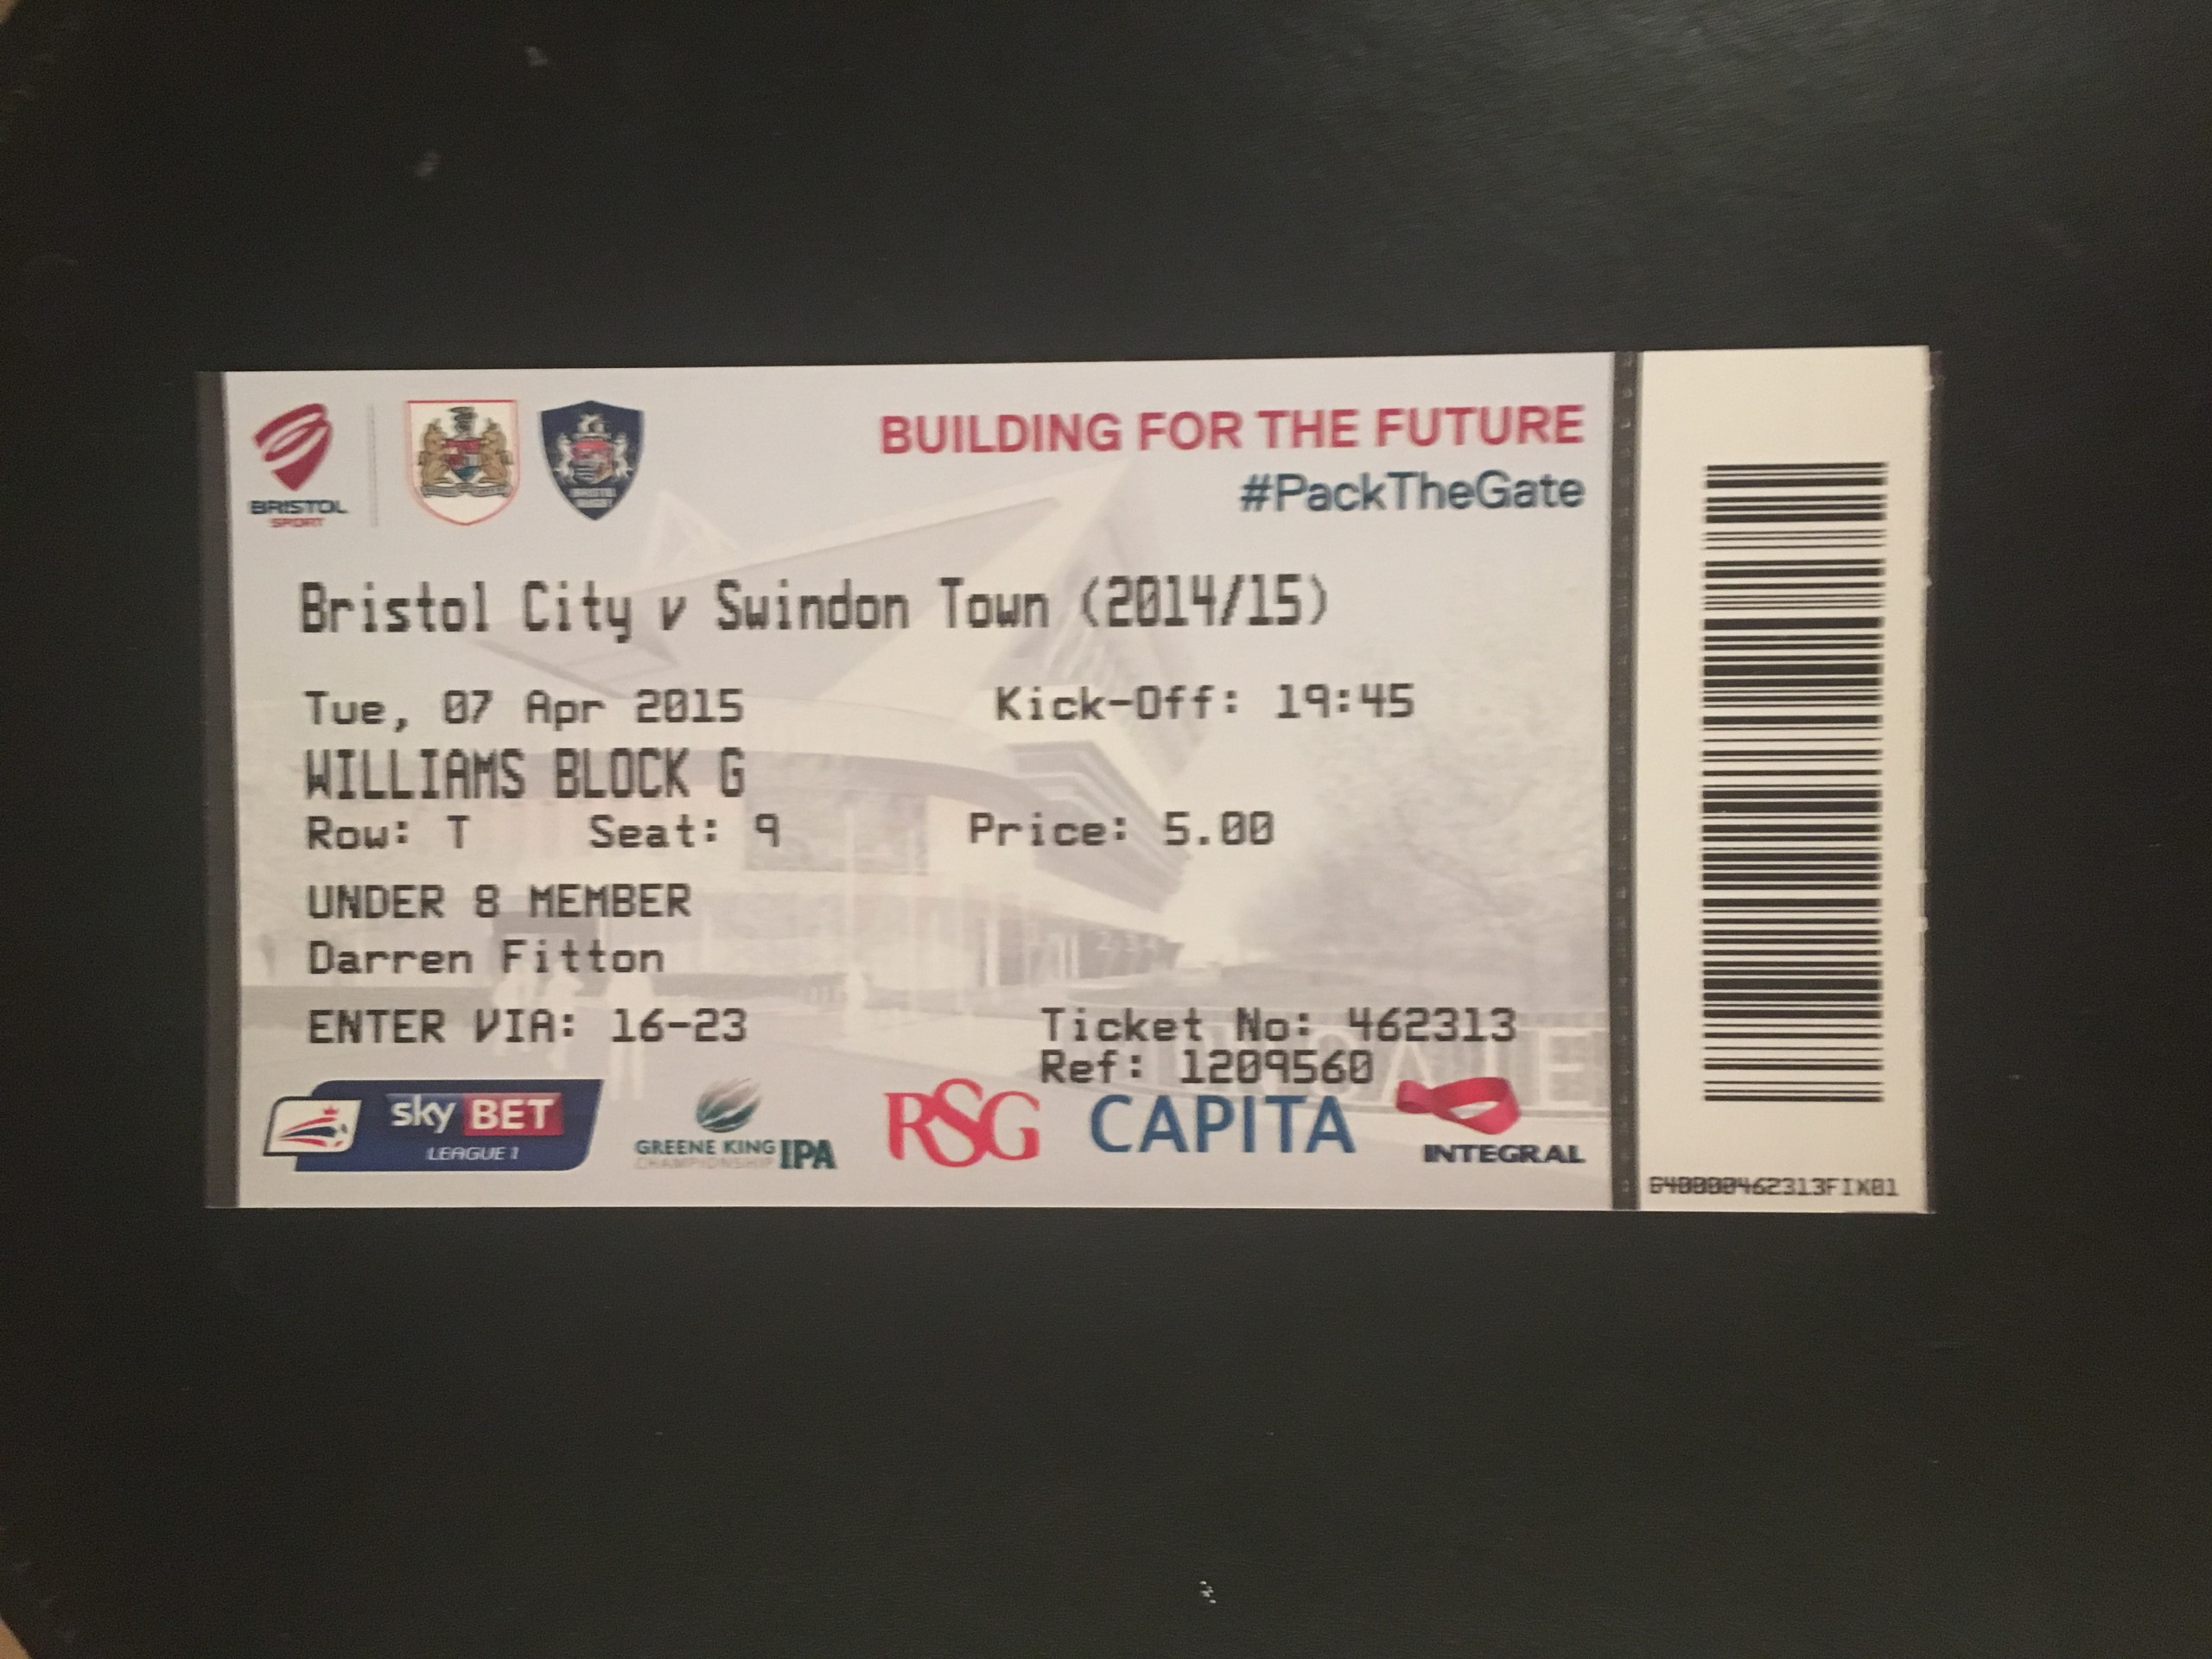 Bristol City v Swindon Town 07-04-2015 Ticket